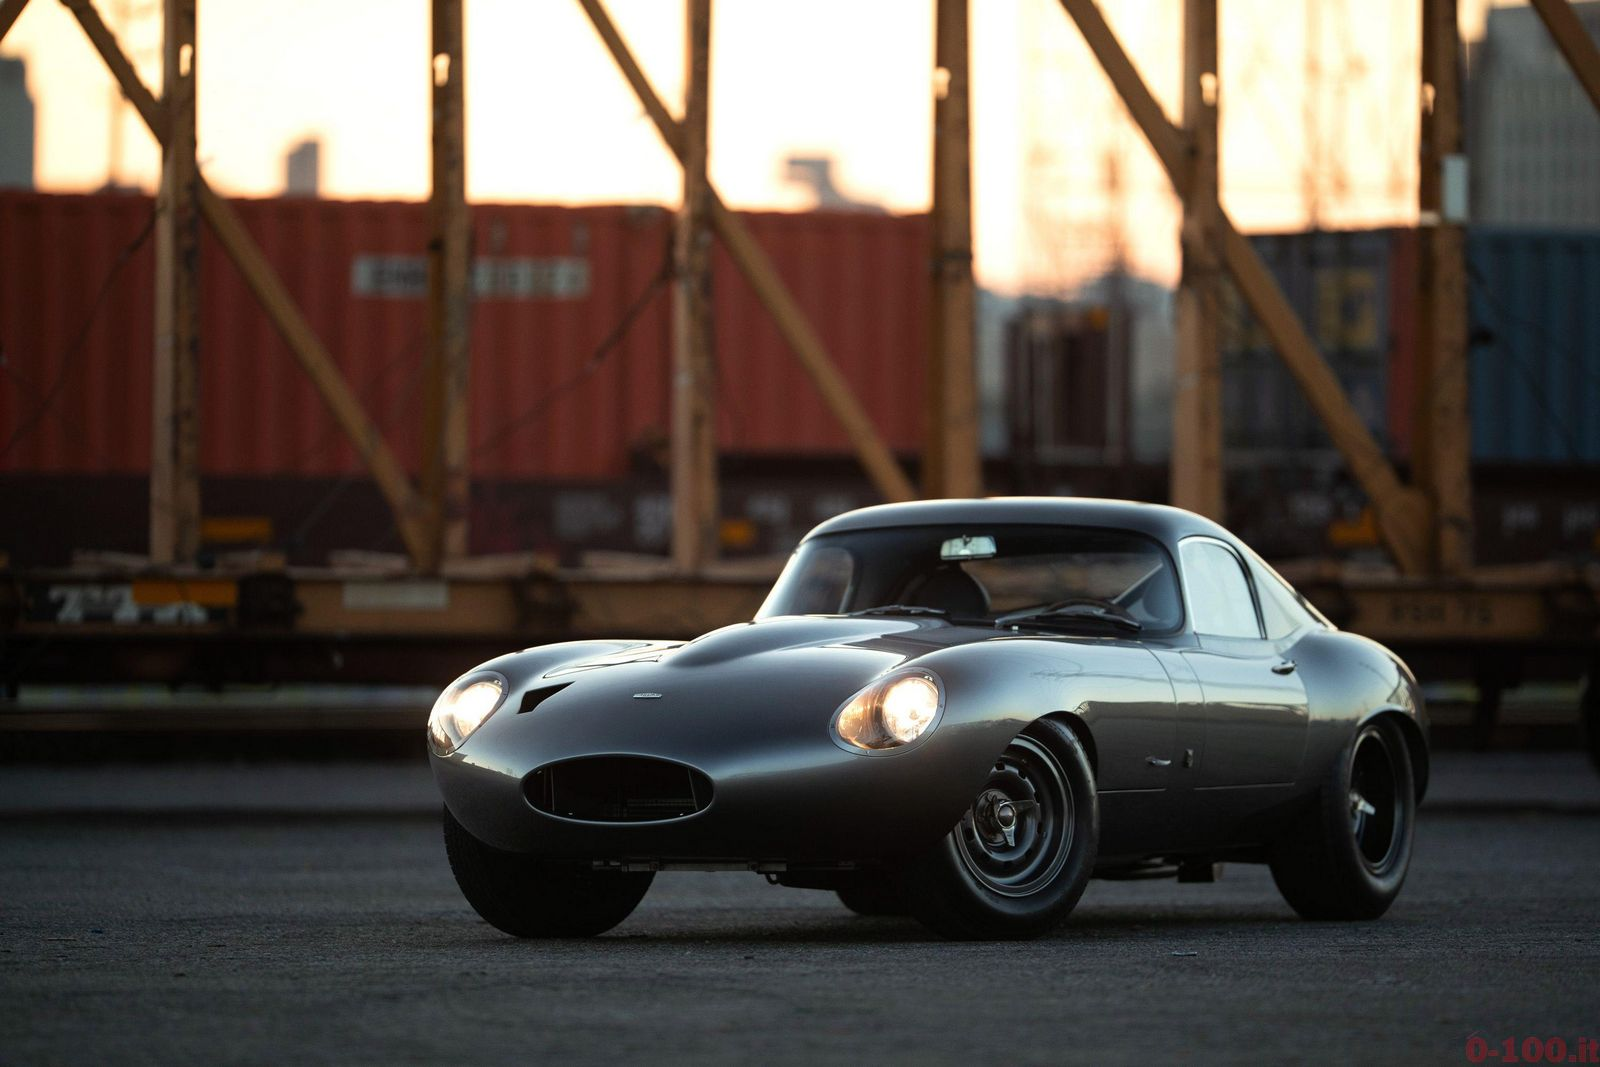 diez_concept_replica_restomod_jaguar_e_type_lightweight_low_drag_coupe_1964_0-100_1